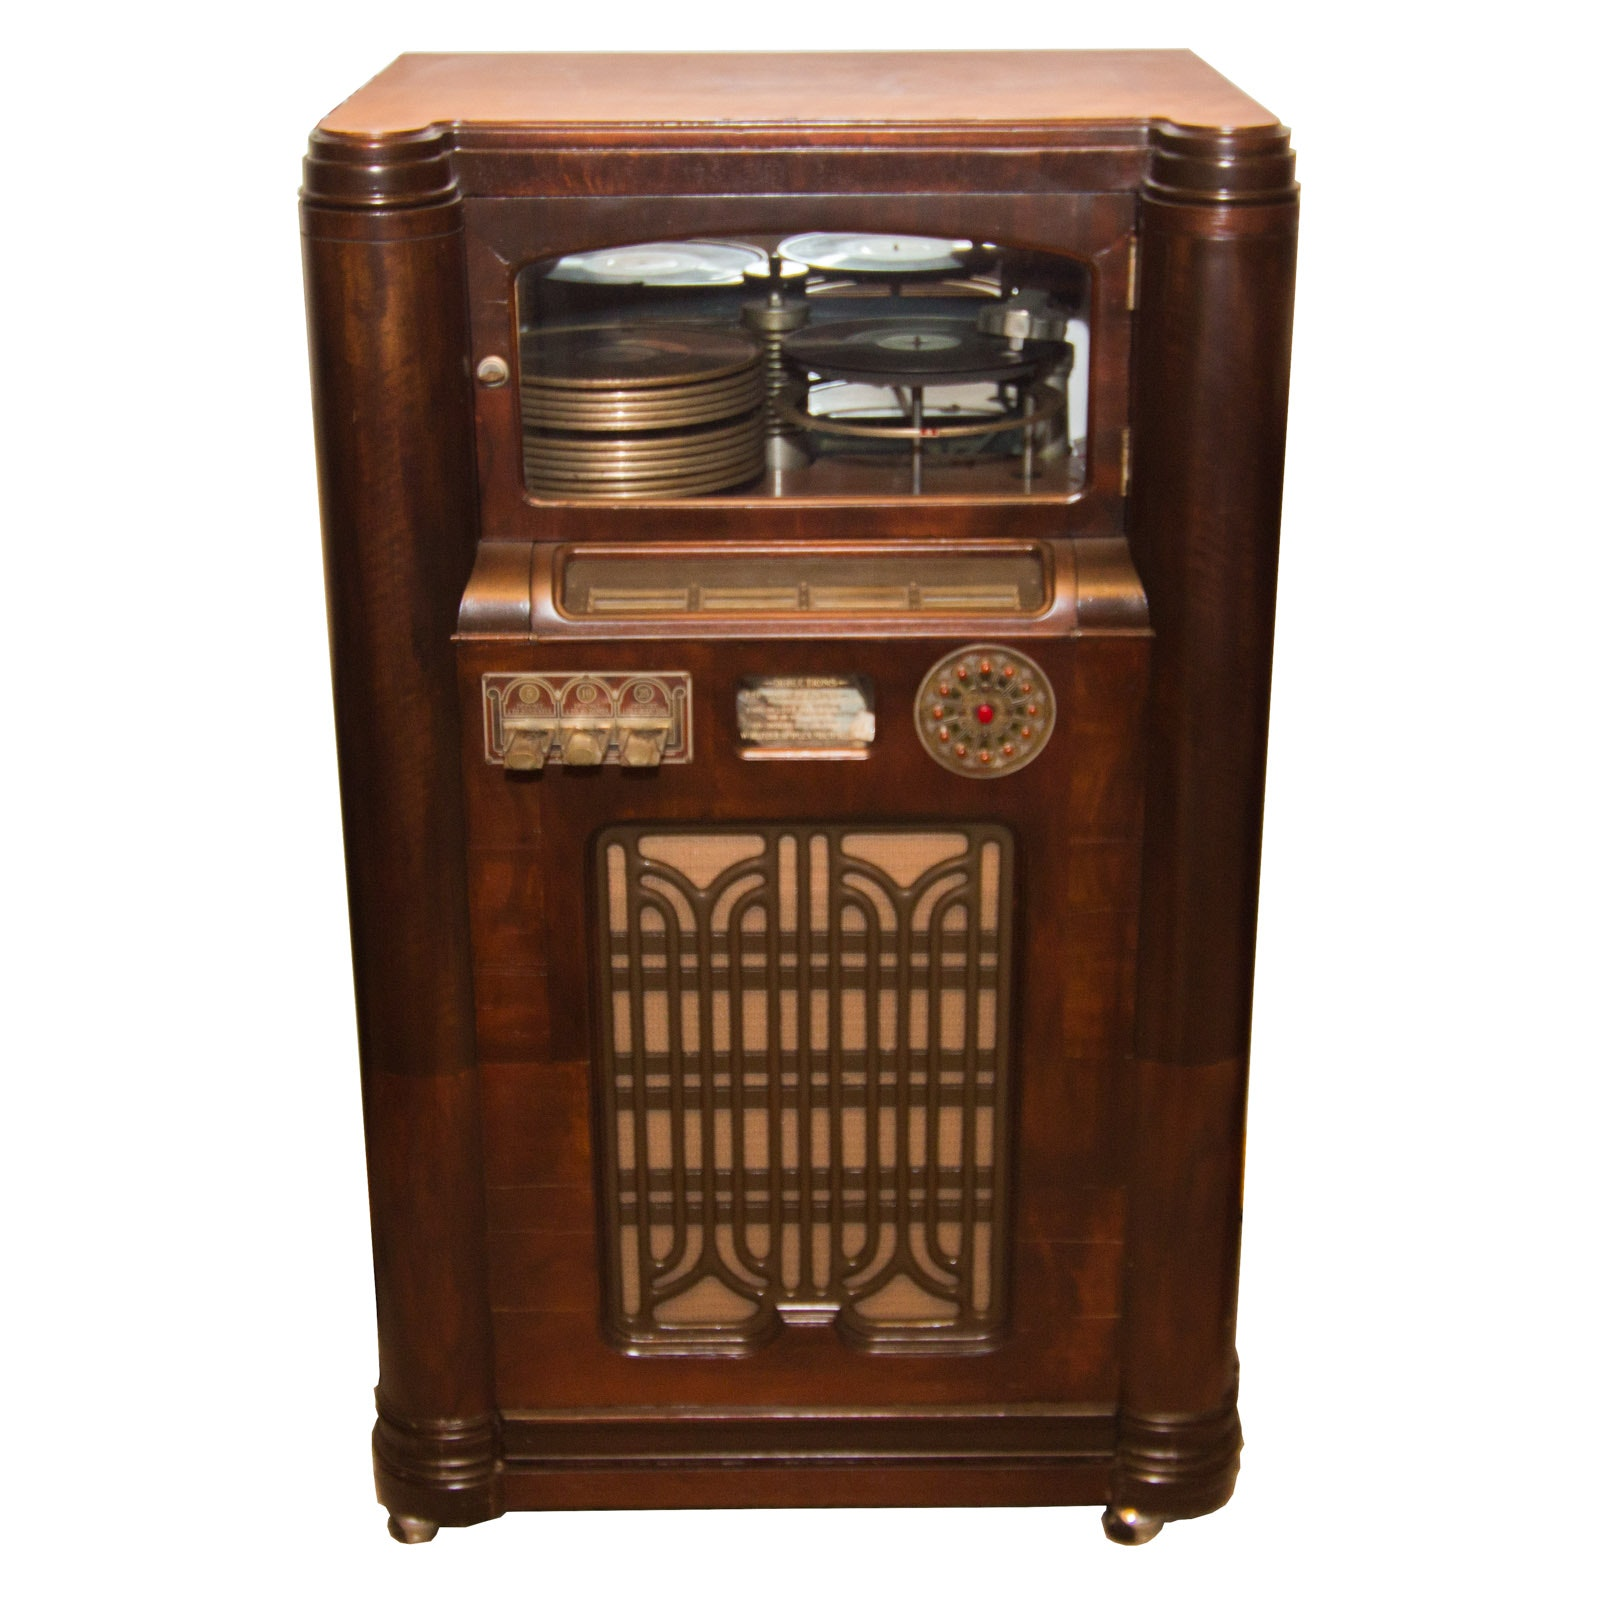 1936 Model 412 Rudolph Wurlitzer Jukebox and Assorted Records